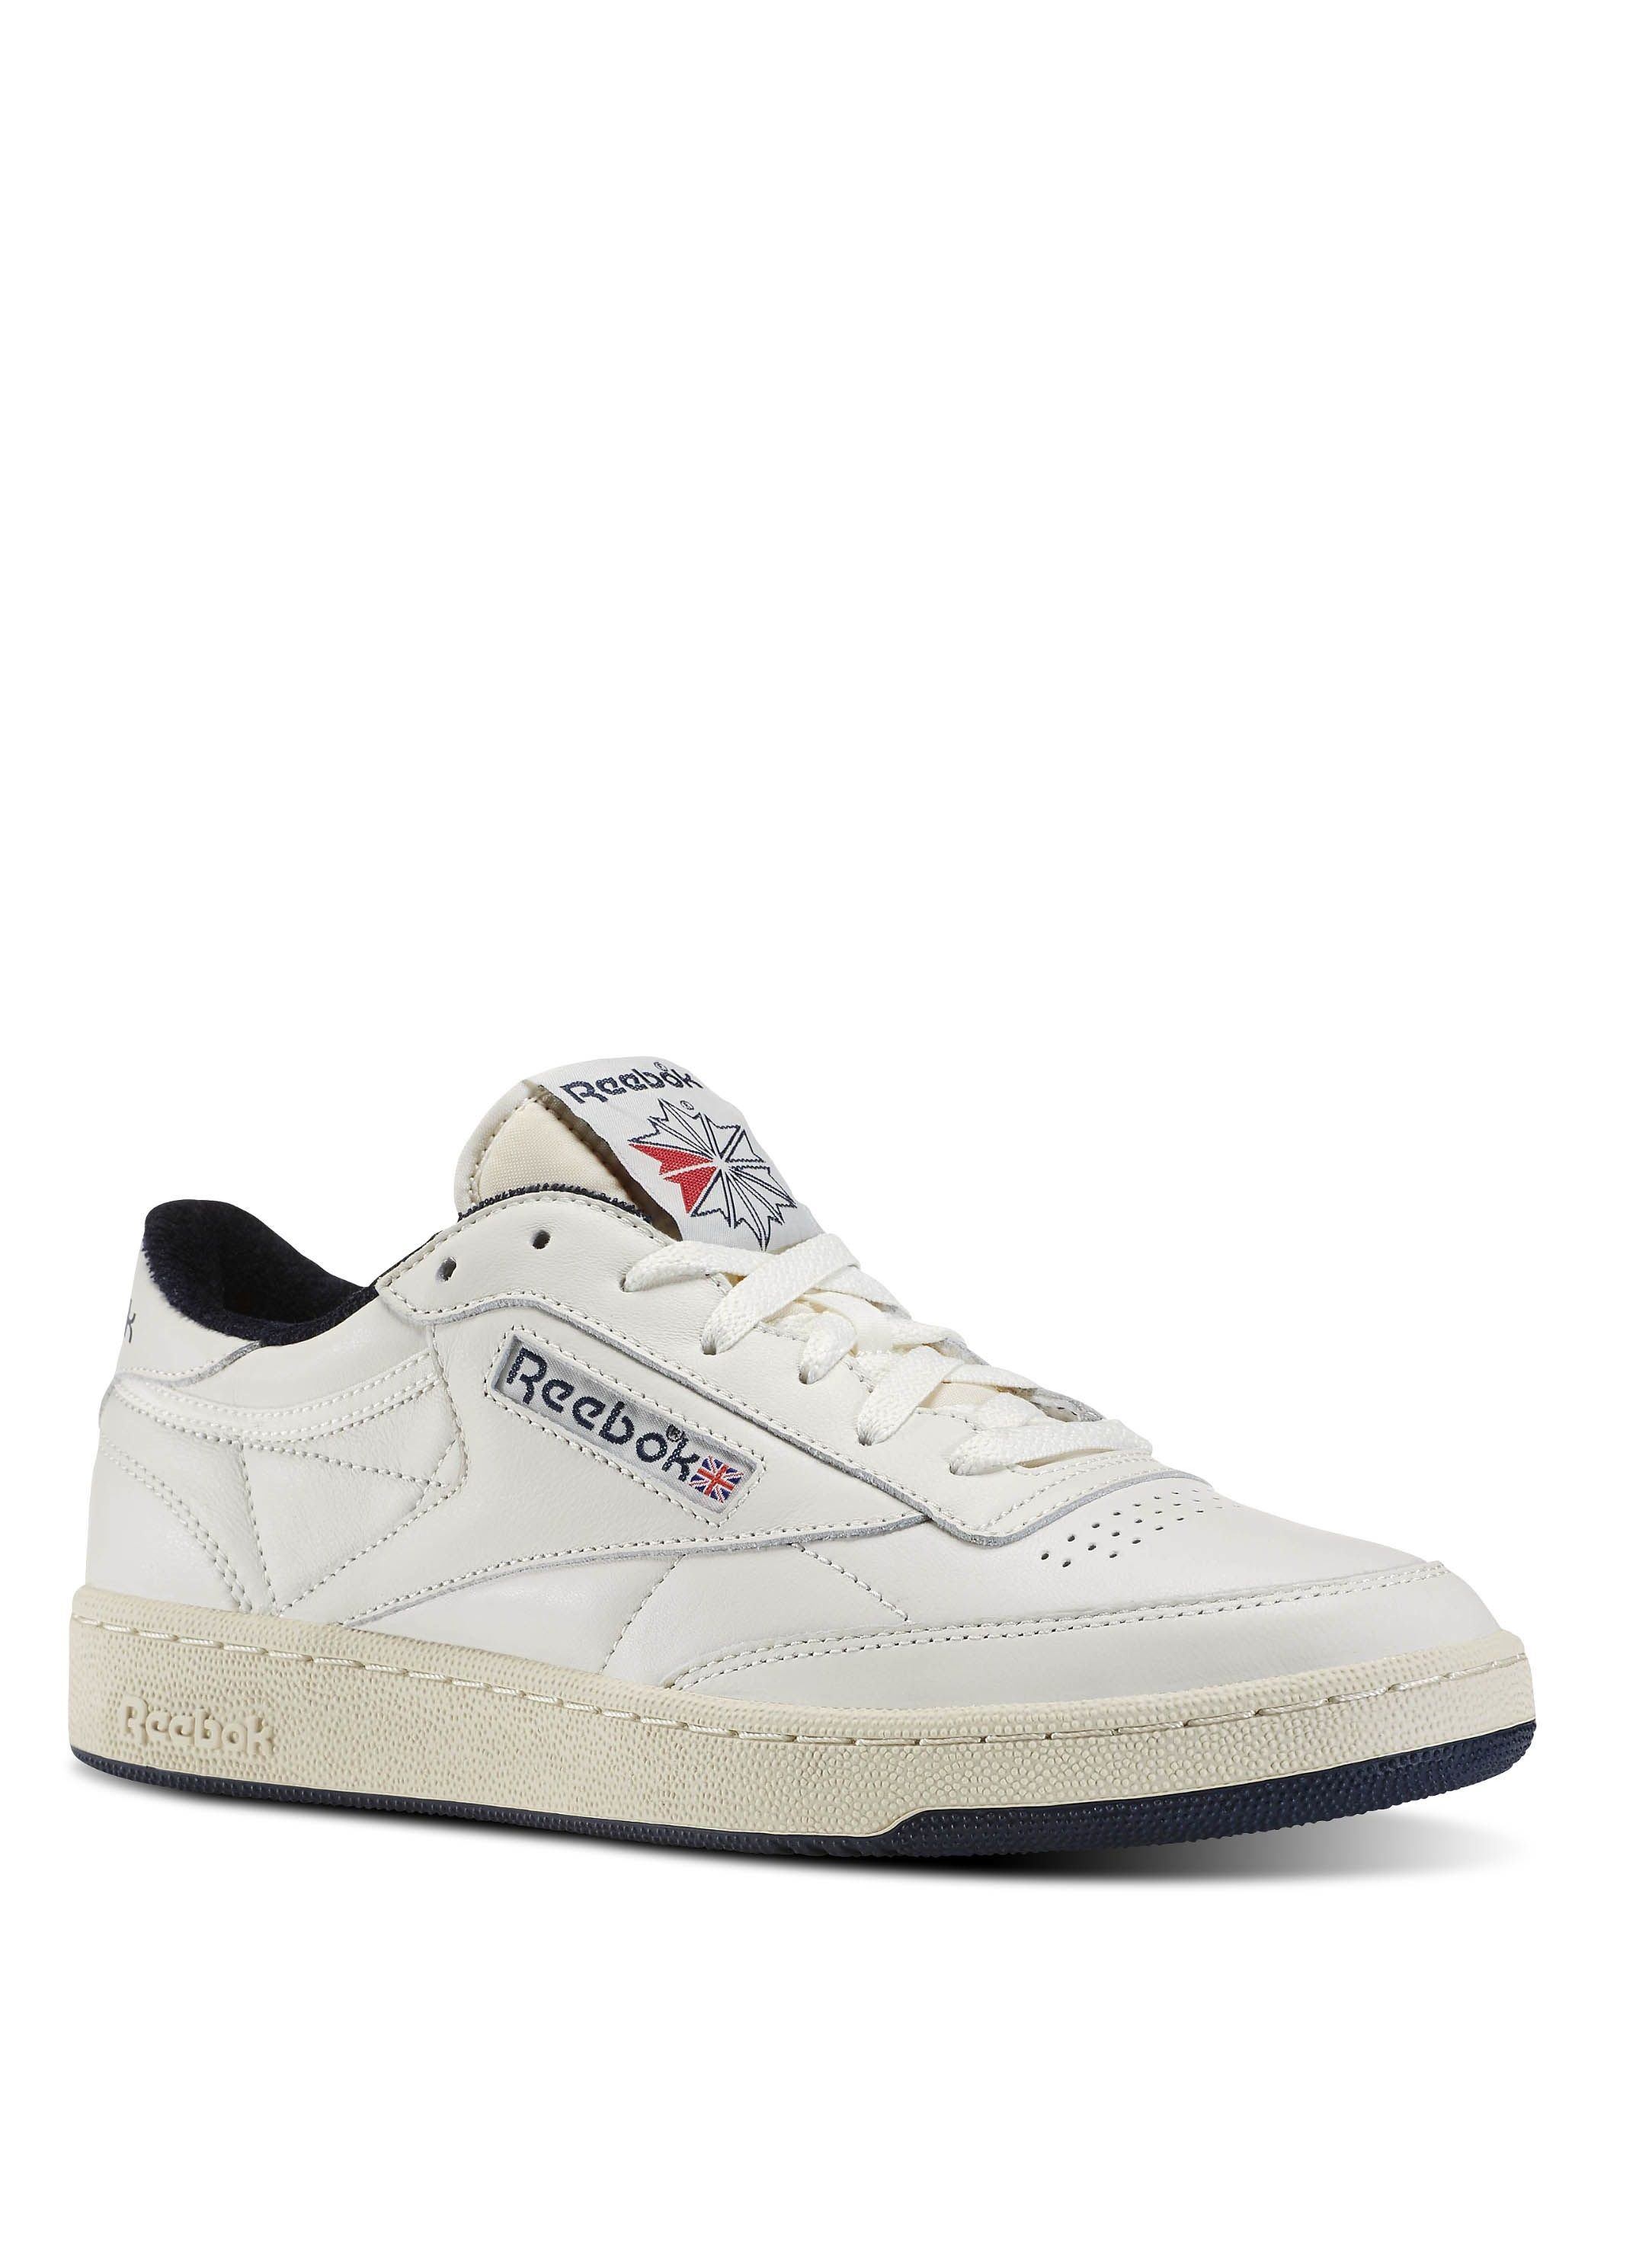 apertura Alfabeto Ocurrencia  Reebok Classics Club C 85 | Club c 85 vintage, Classic shoes, Retro shoes